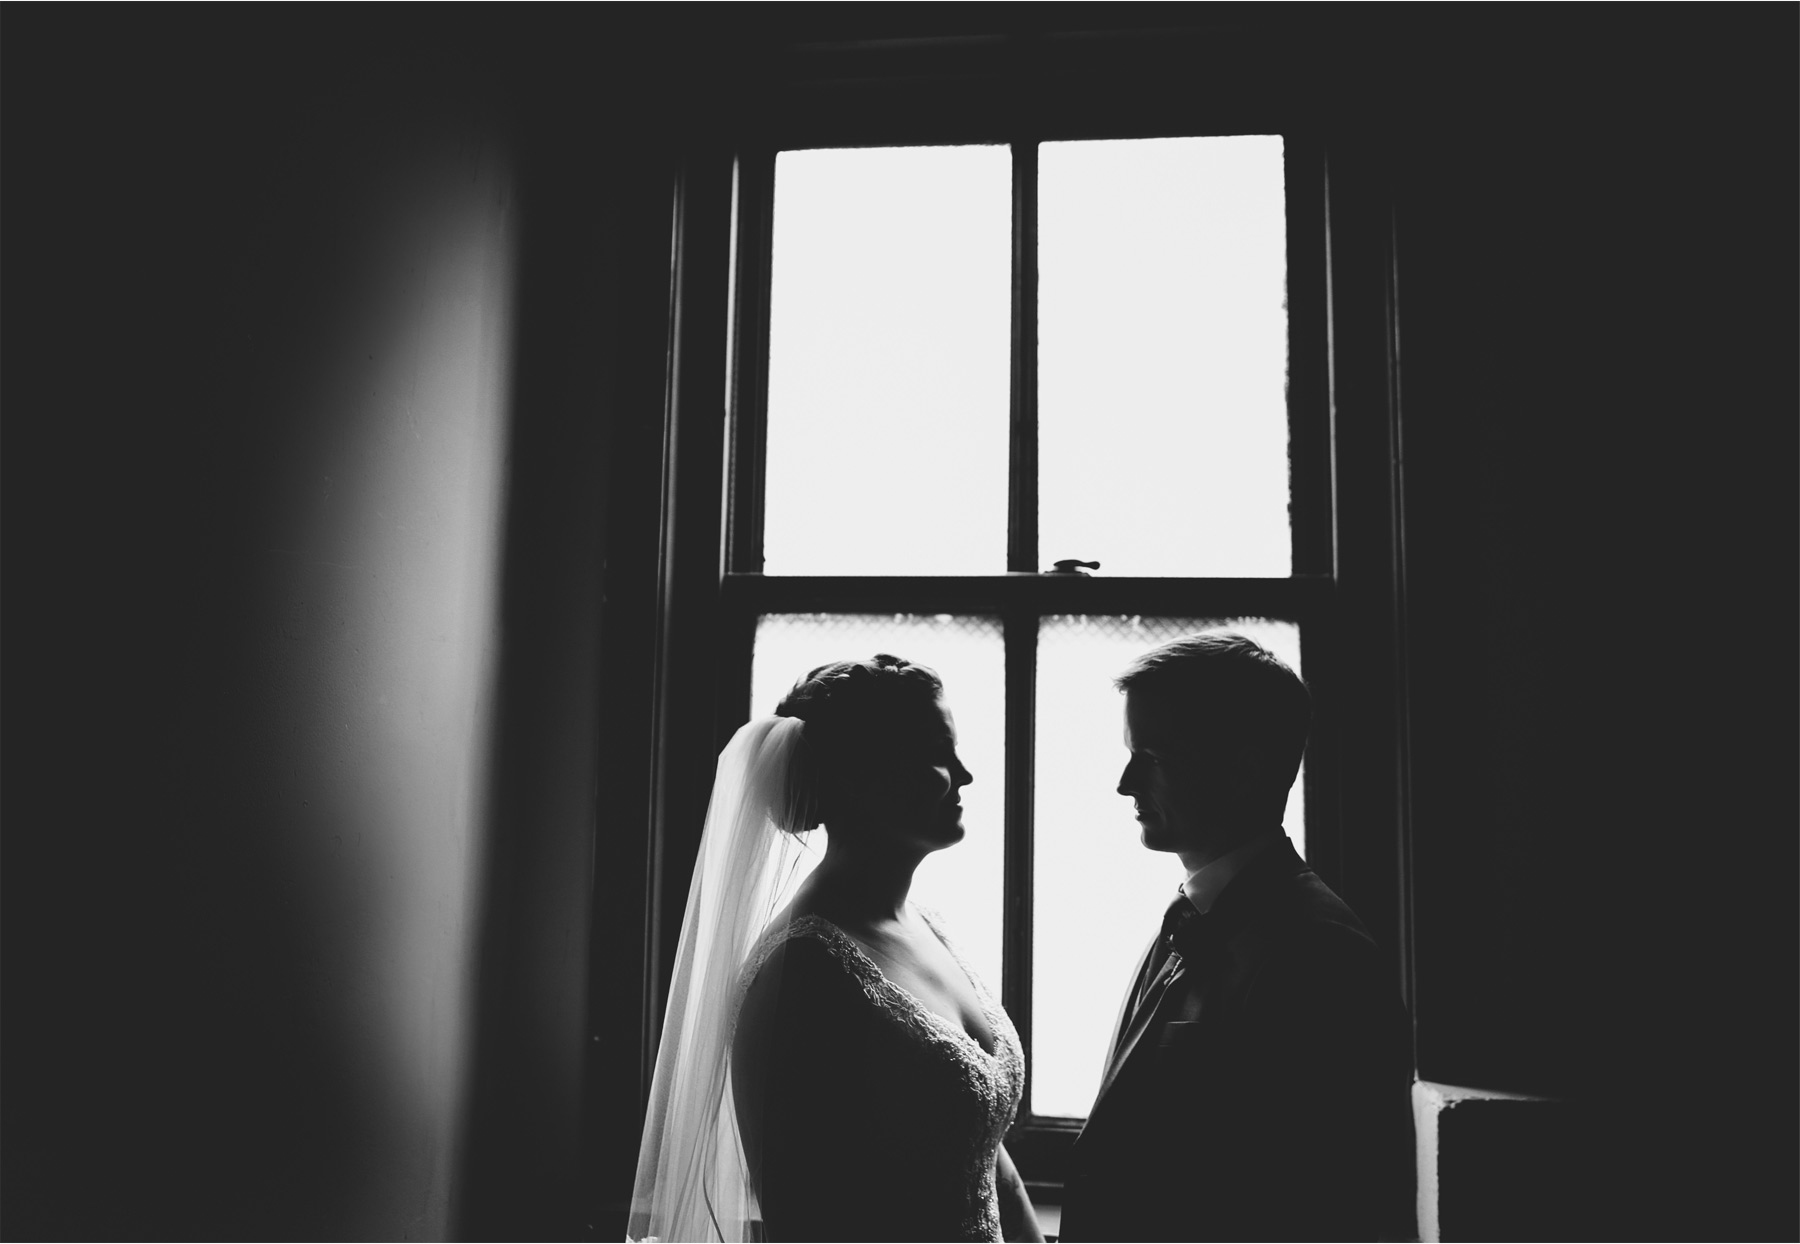 10-Chicago-Illinois-Wedding-Photographer-by-Andrew-Vick-Photography-Winter-Stan-Mansion-First-Meeting-Look-Bride-Groom-Black-and-White-Colleen-and-Mike.jpg